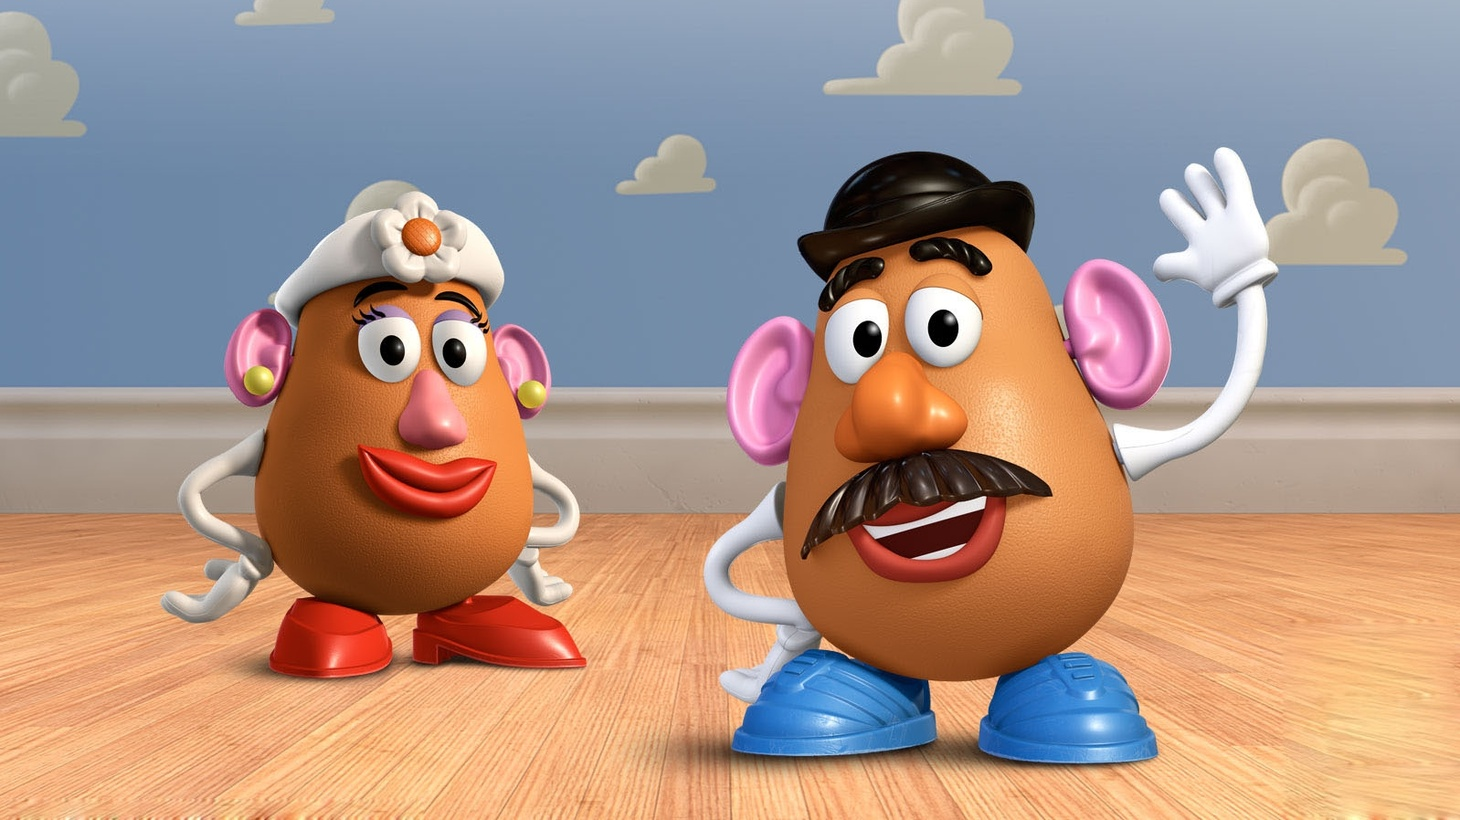 Mr. and Mrs. Potato Head from the Toy Story series.